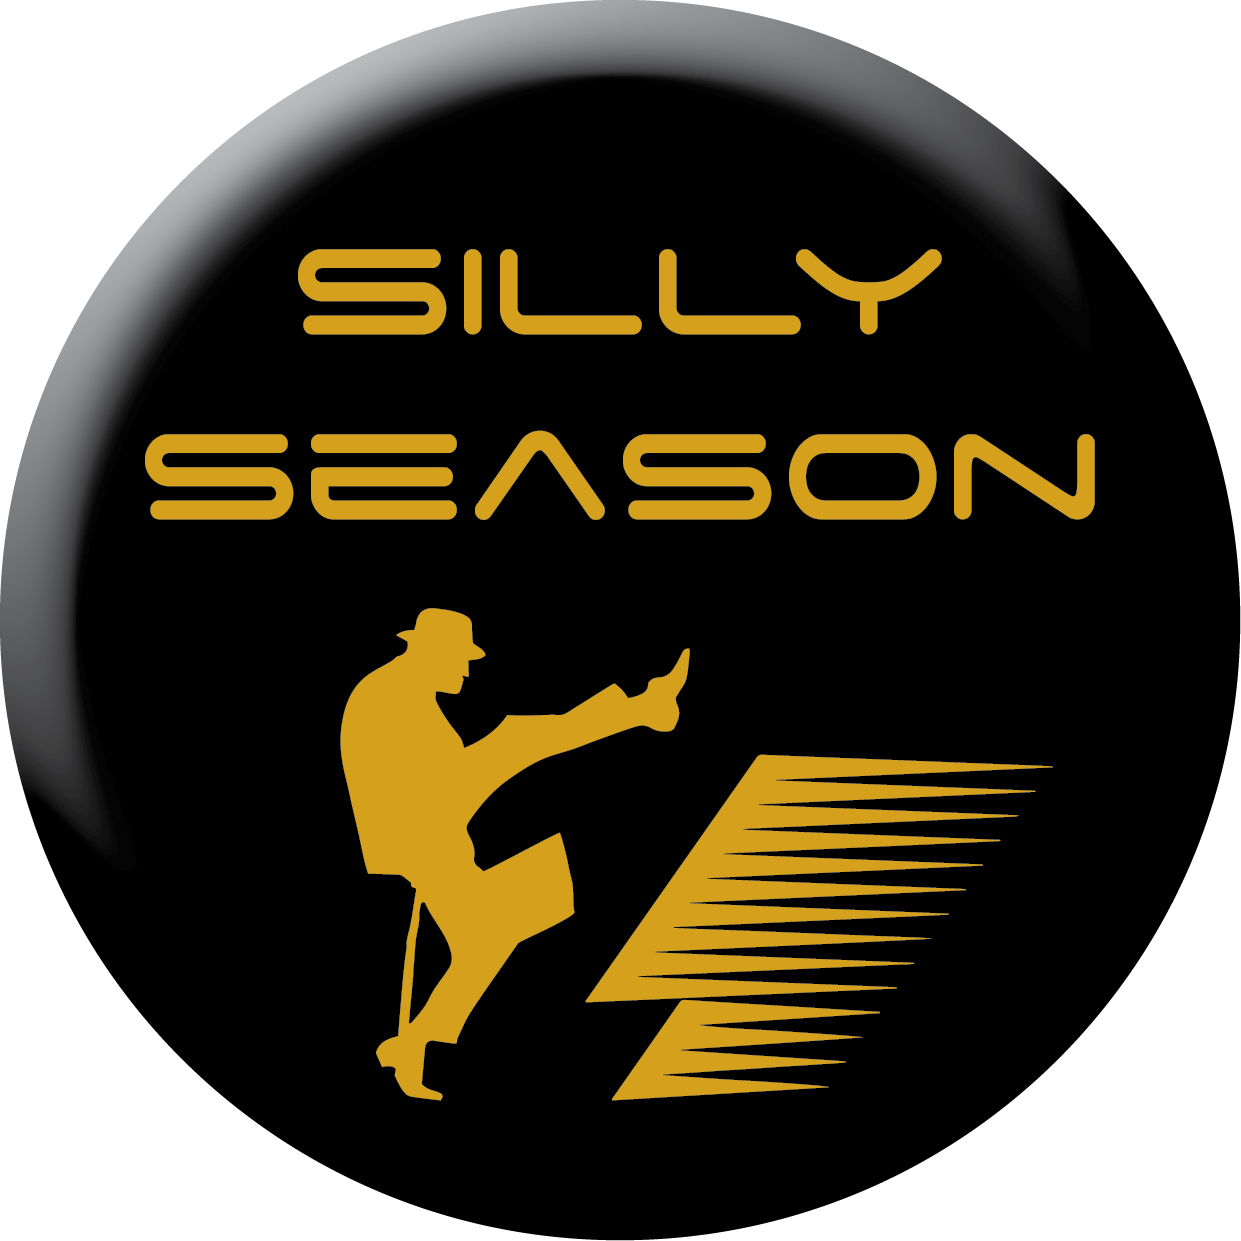 Mallemolen / Silly Season